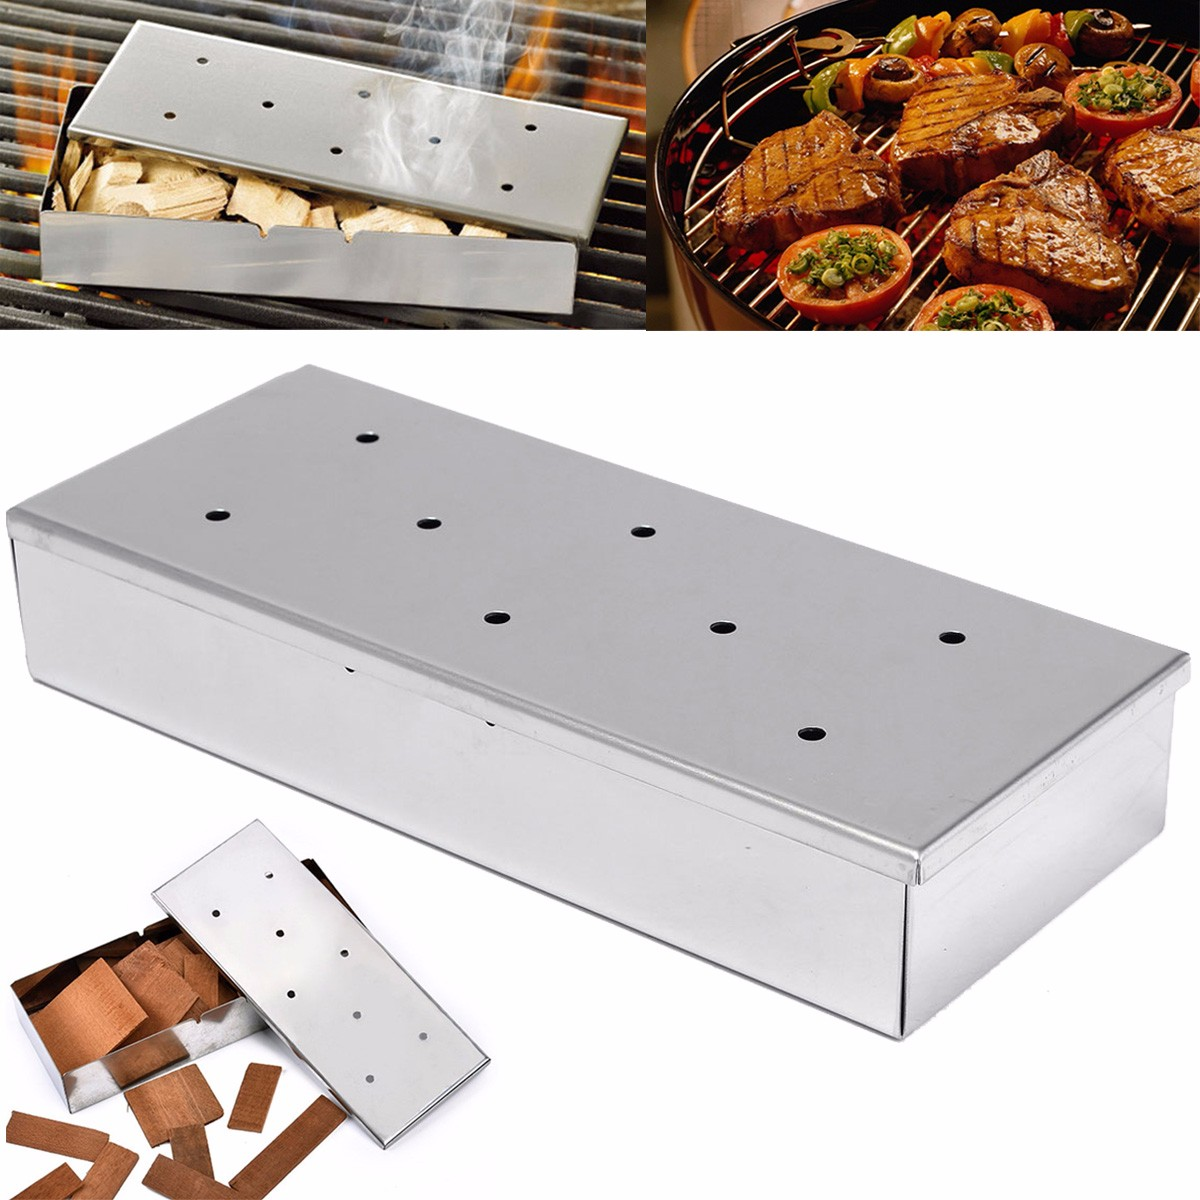 Stainless Steel BBQ Gas Grill Smoker Box Home Garden Outdooors Wood Chips Barbecue Tool Accessories